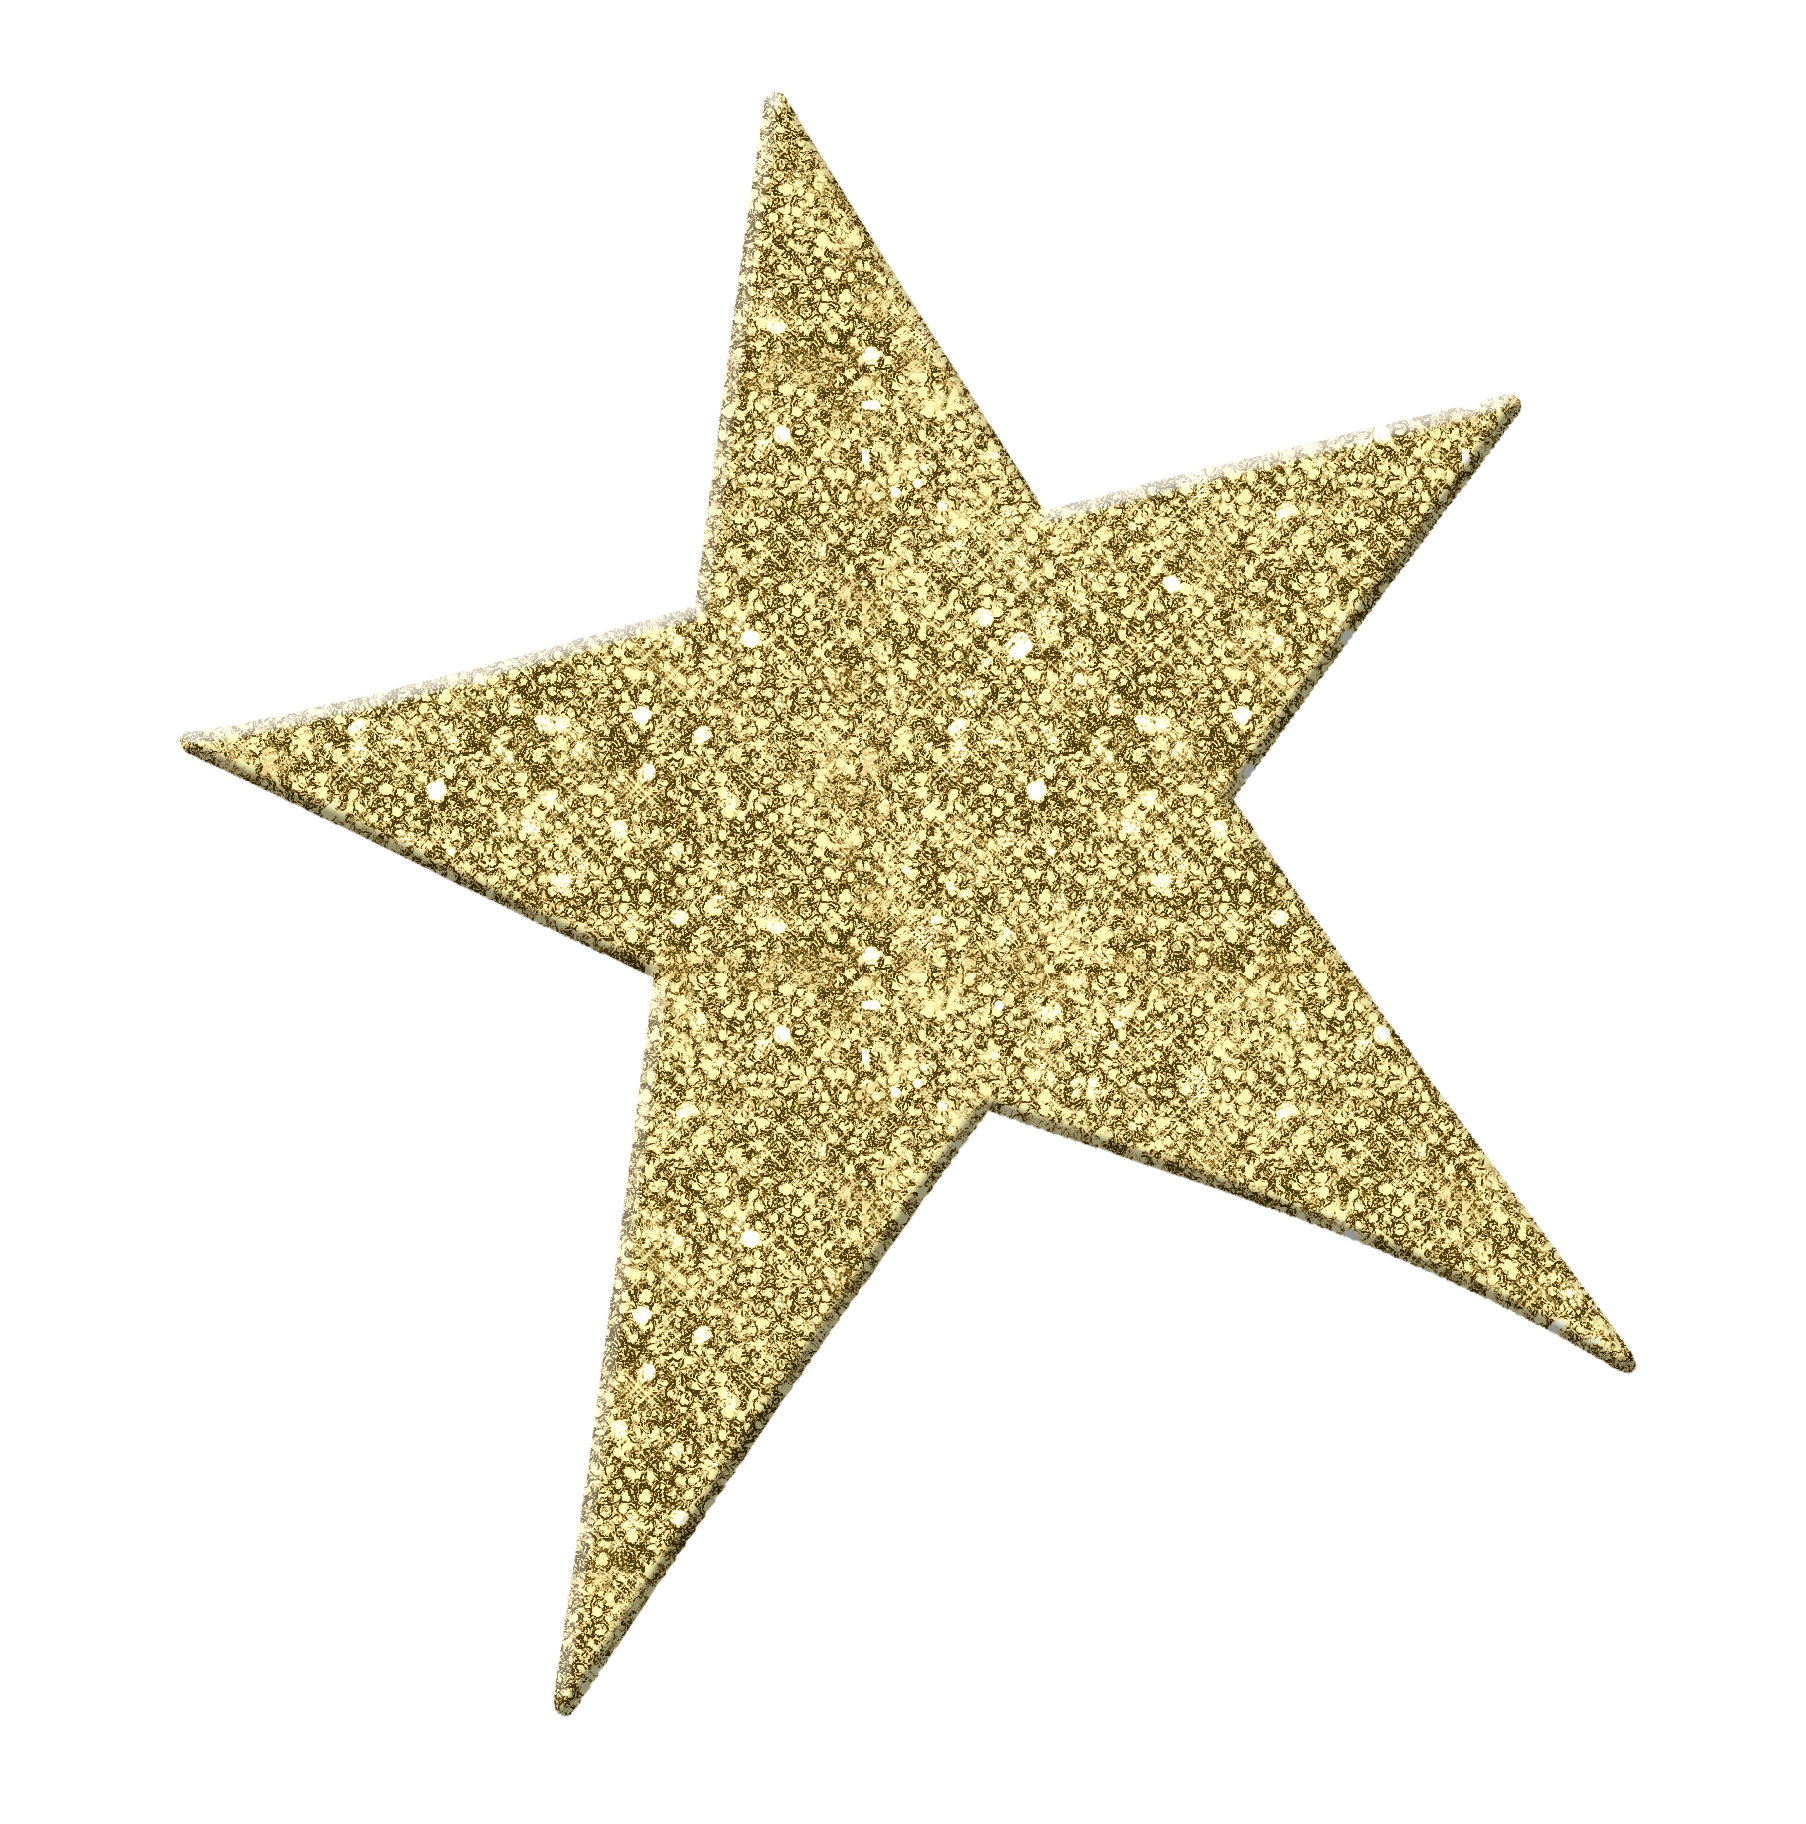 Golden star hollywood image. Gold stars png clipart free library